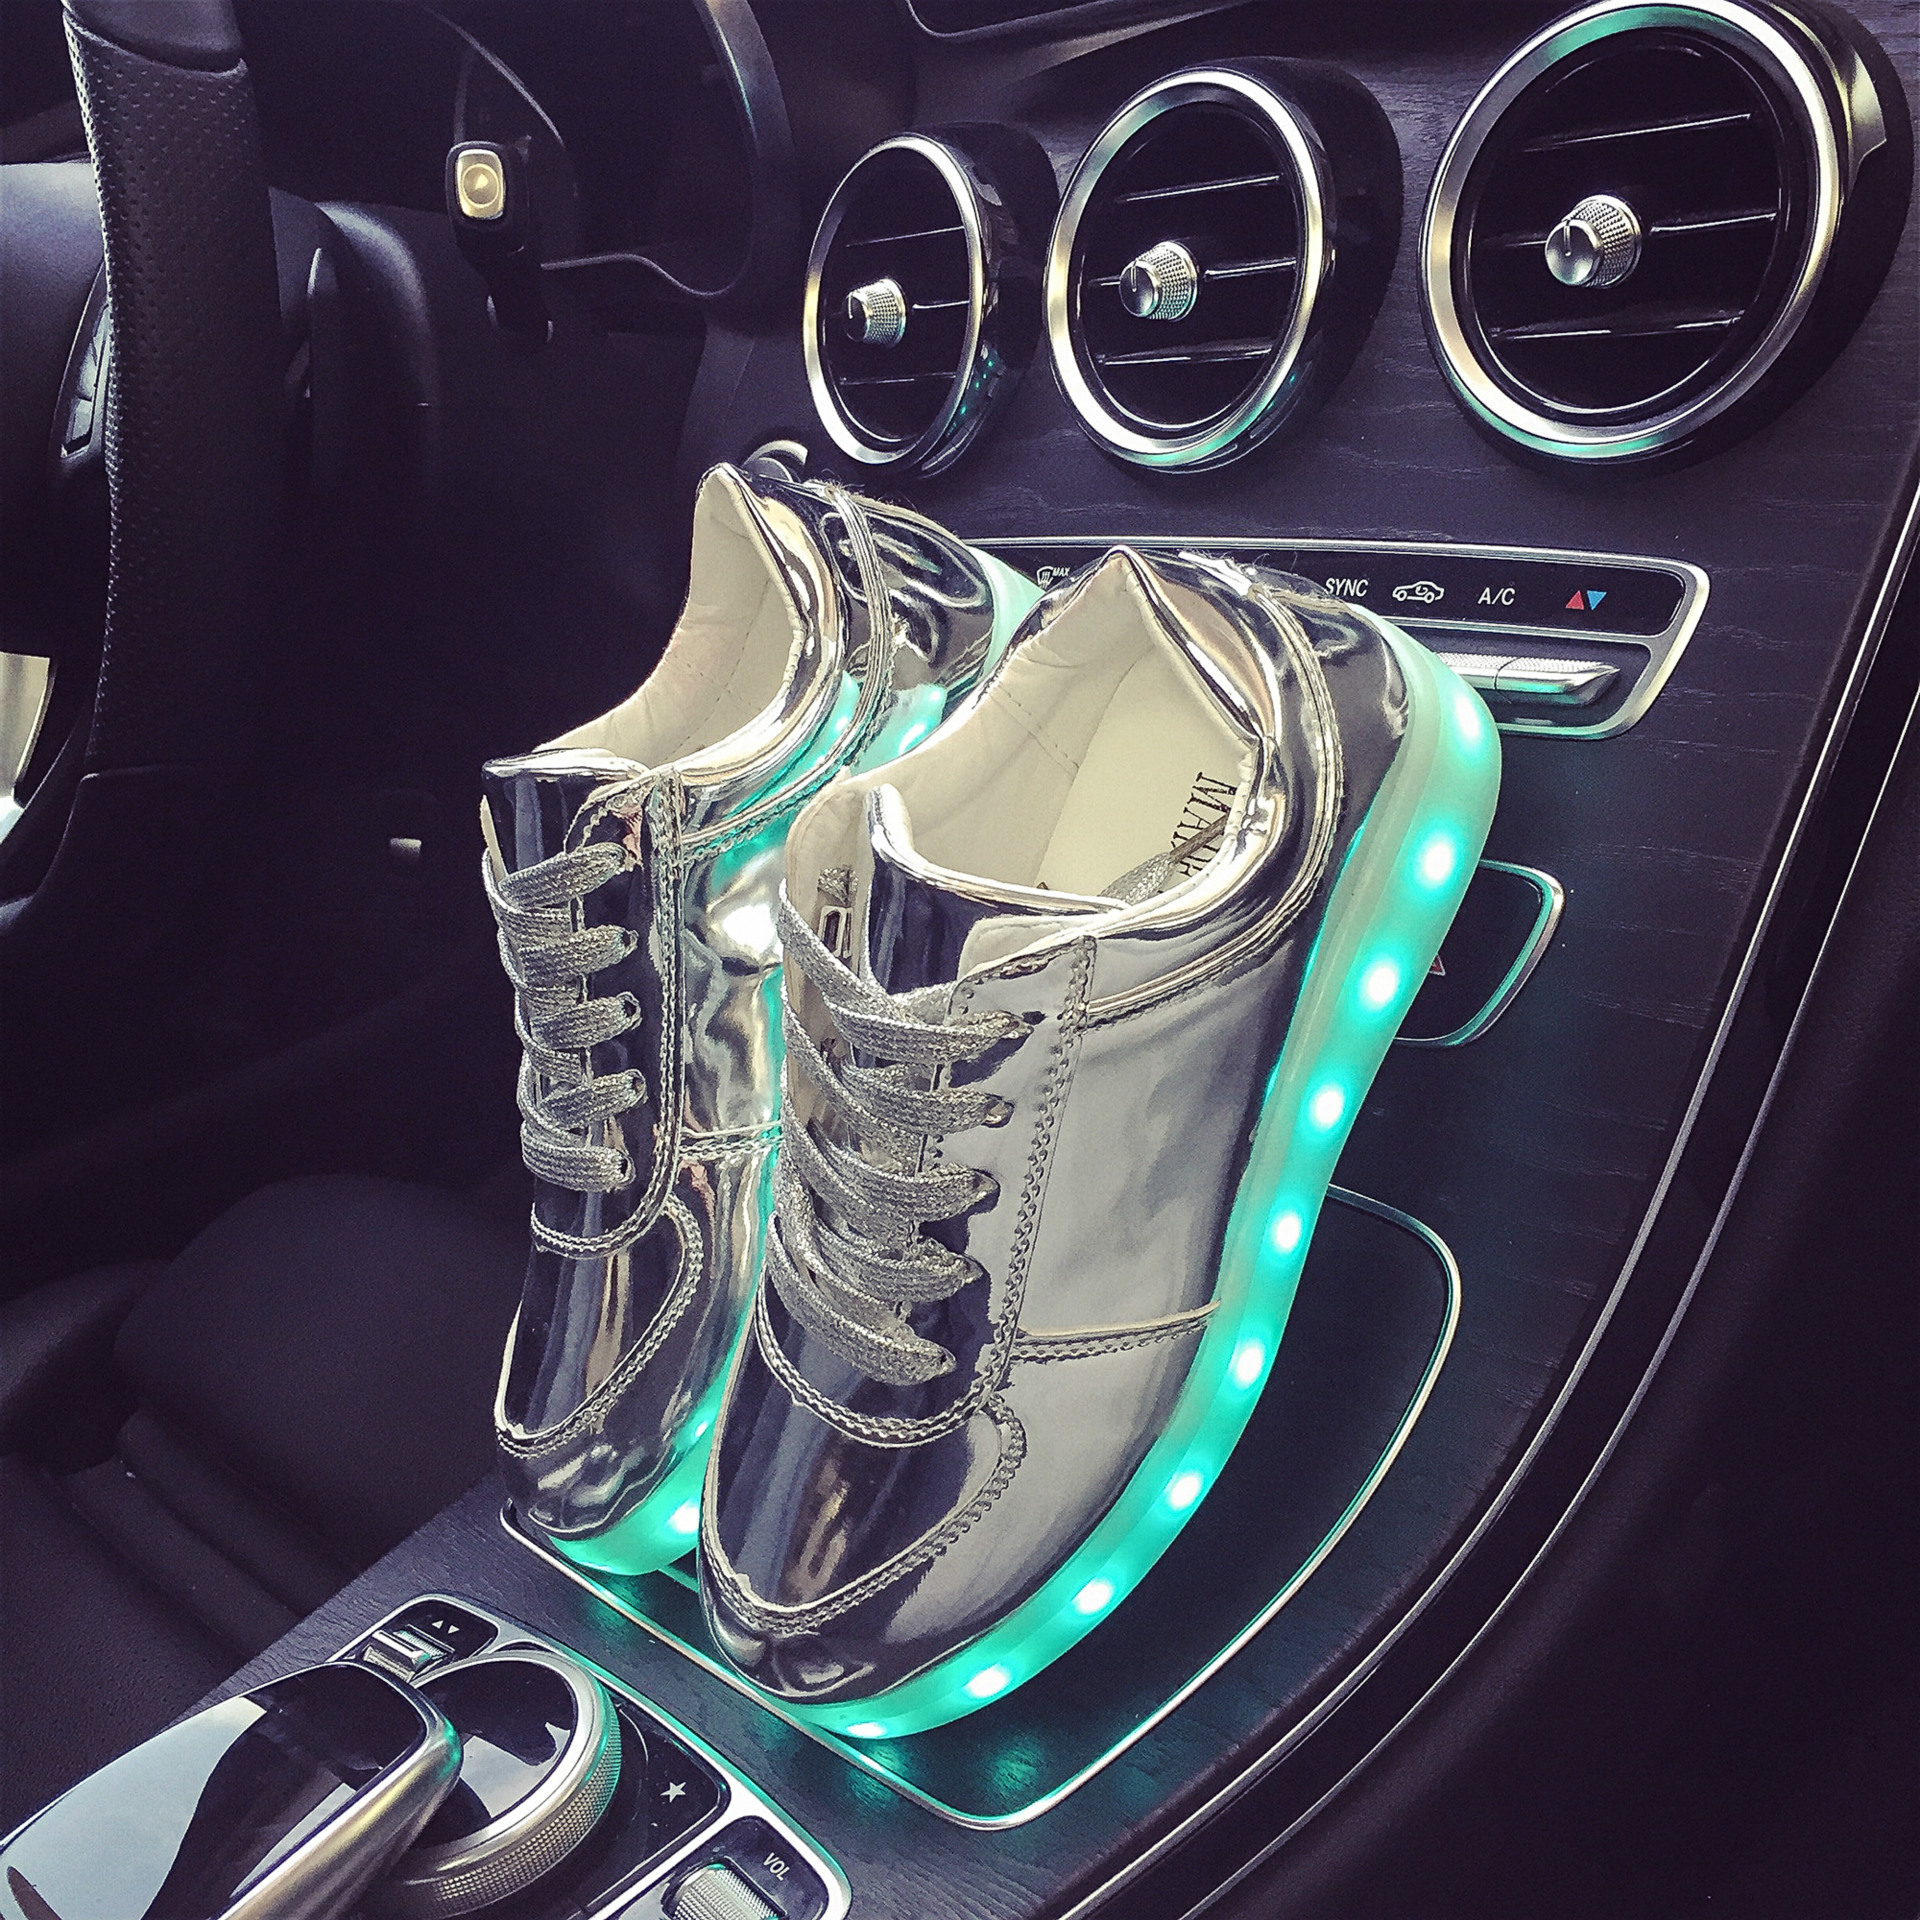 Eur Size 27-42 7 Colors Luminous Sneakers Glowing Boys LED Shoes Girls Child LED Slippers Light Up Shoes for Men Women